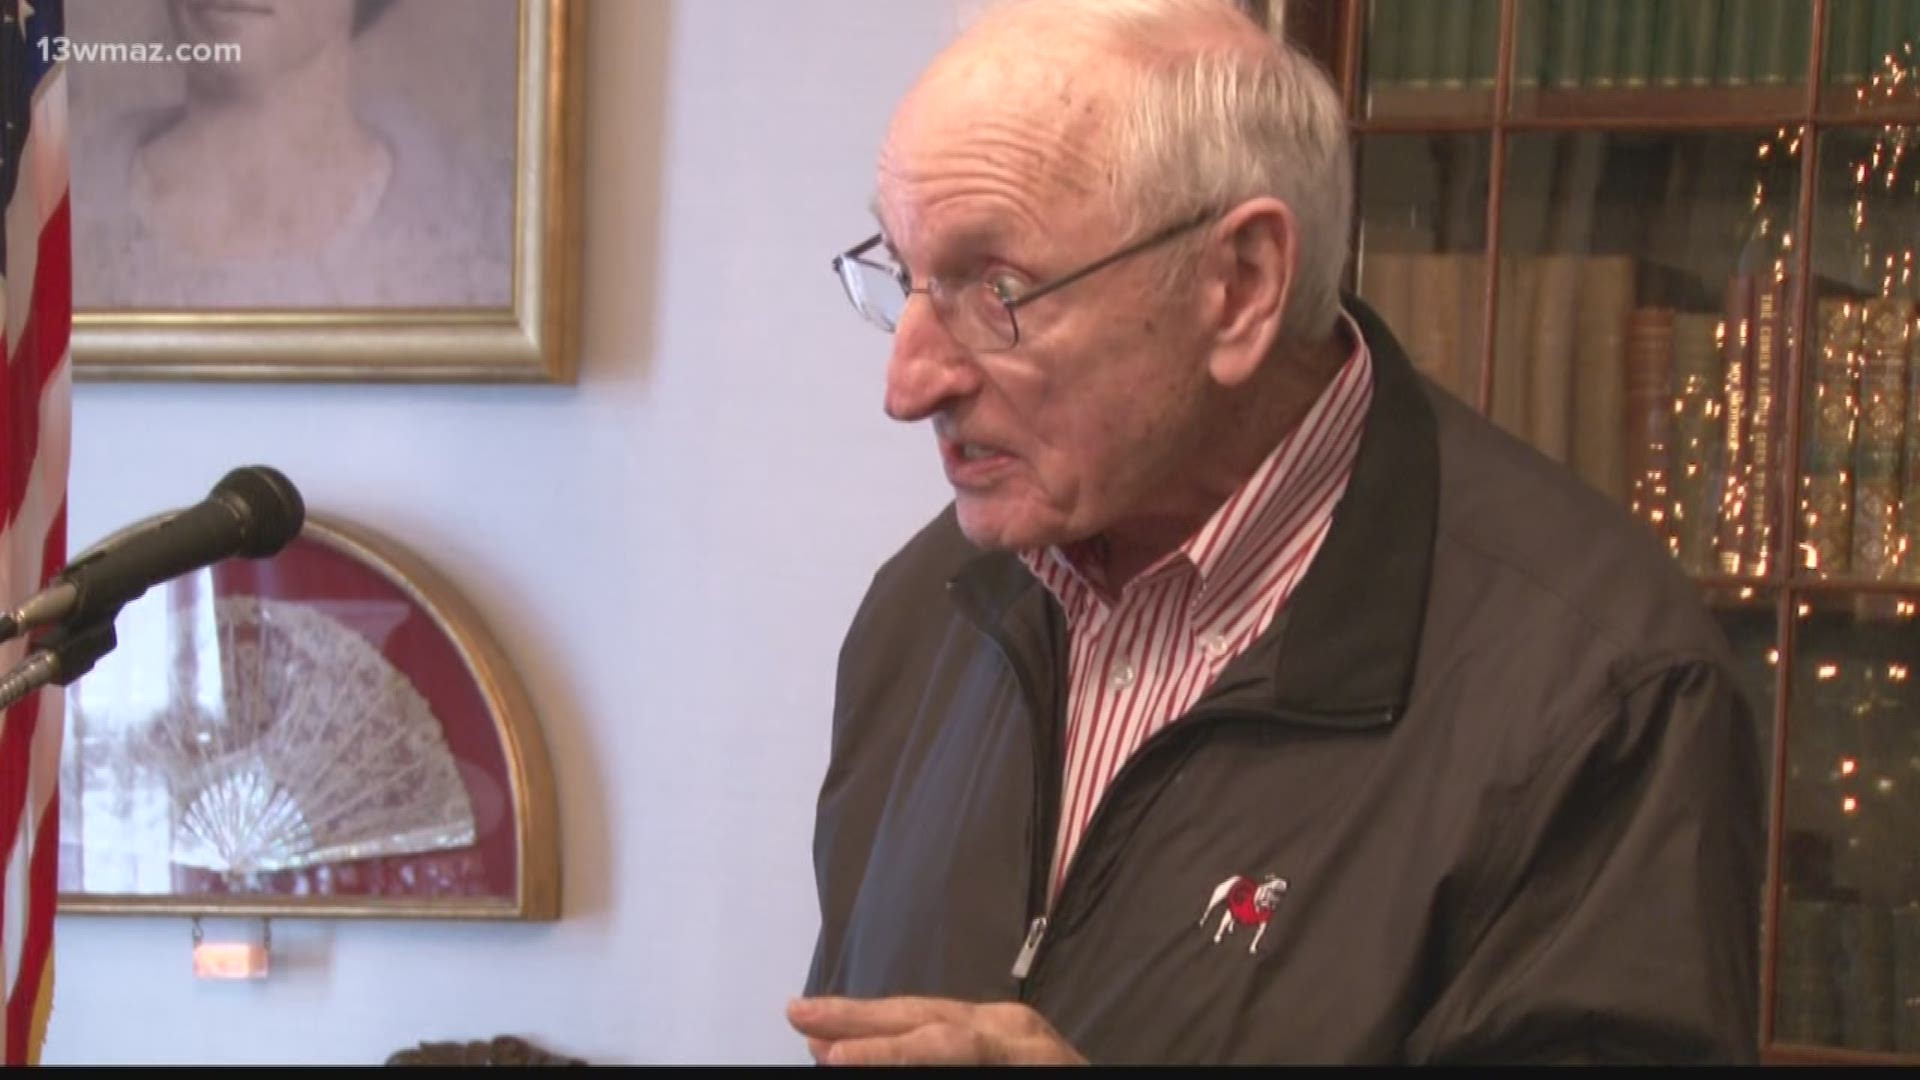 Former Uga Coach Vince Dooley Stops In Macon For Book Signing